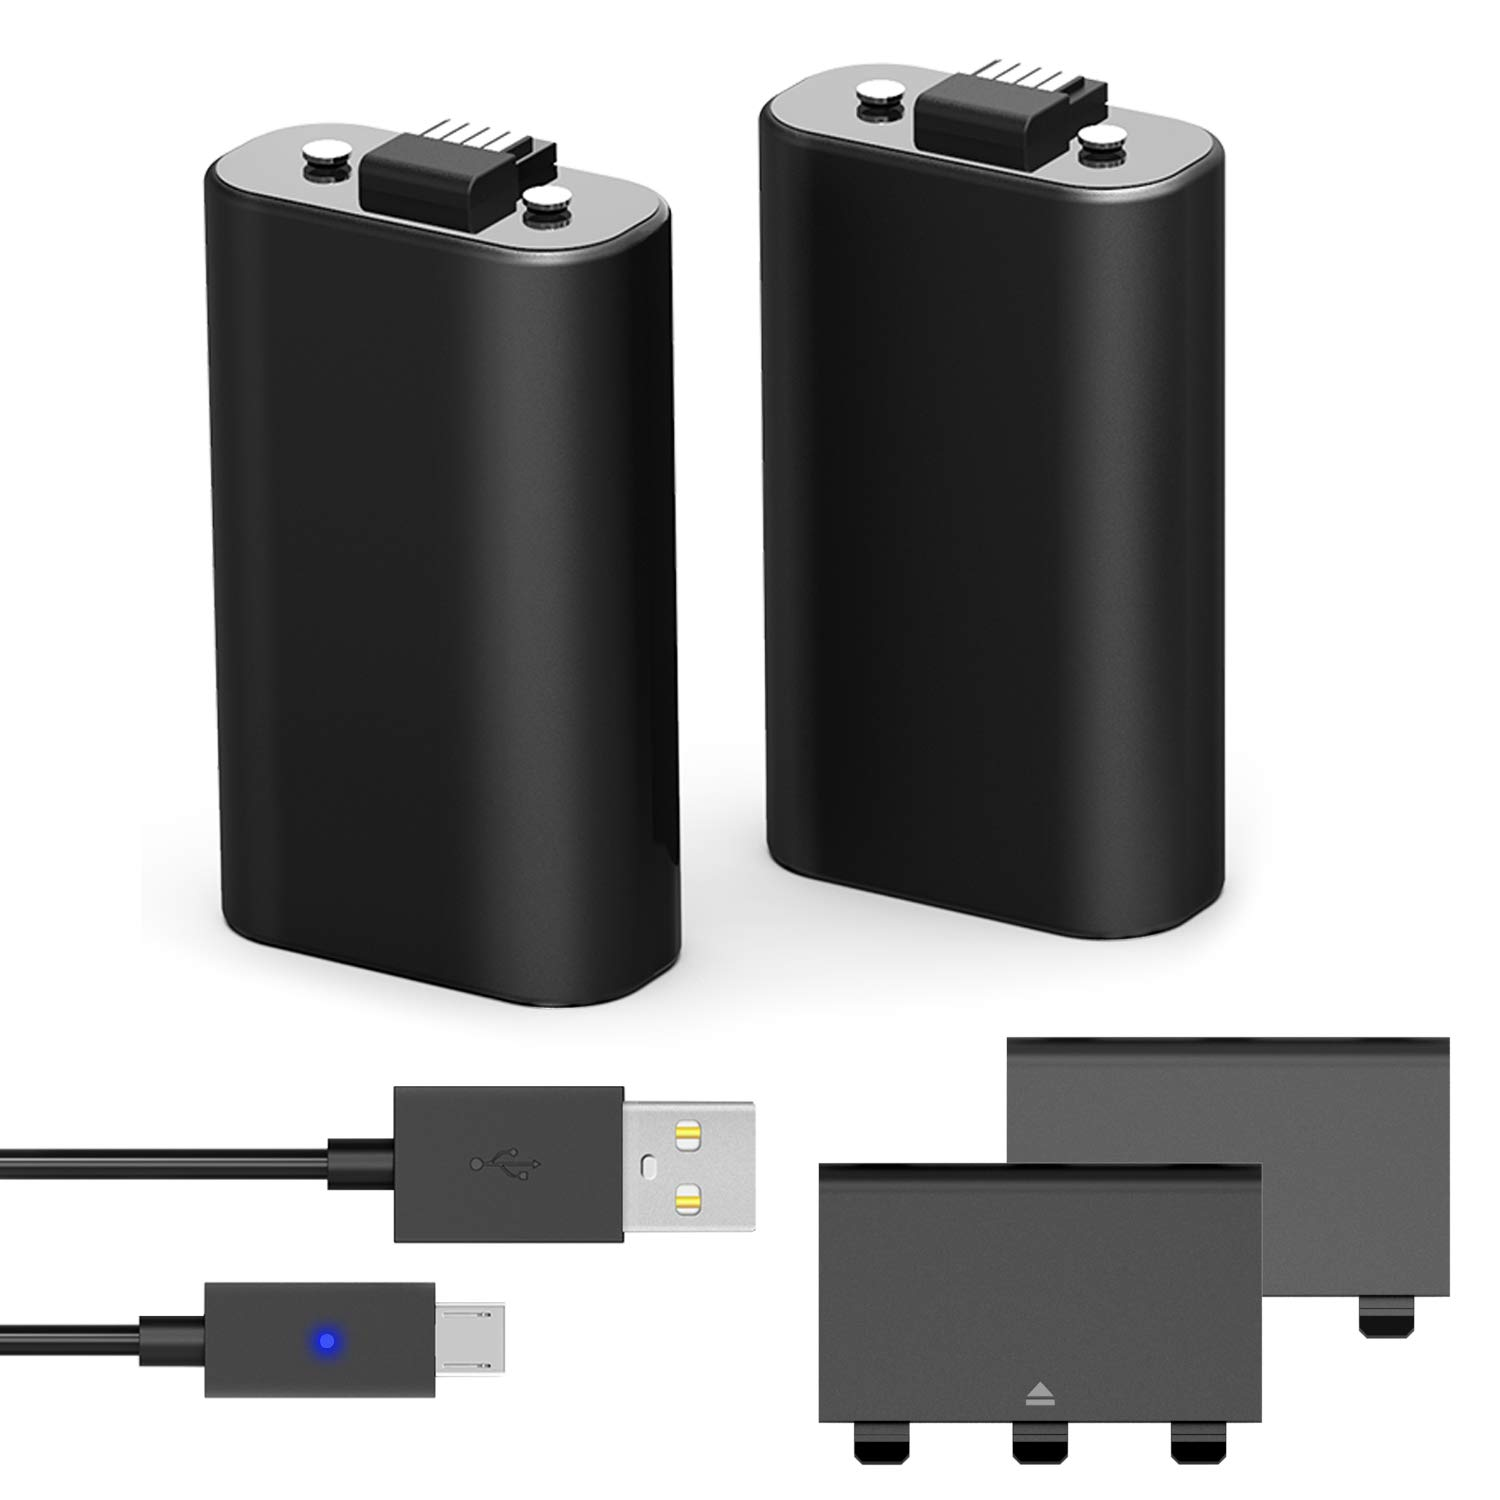 Xbox One Controller Battery Pack,Xbox One S Play and Charge Kit,Xbox One X 1200mAh Rechargeable Battery Twin Pack with Micro USB Charging Cable for Xbox One / Xbox One S / Xbox One X Controllers